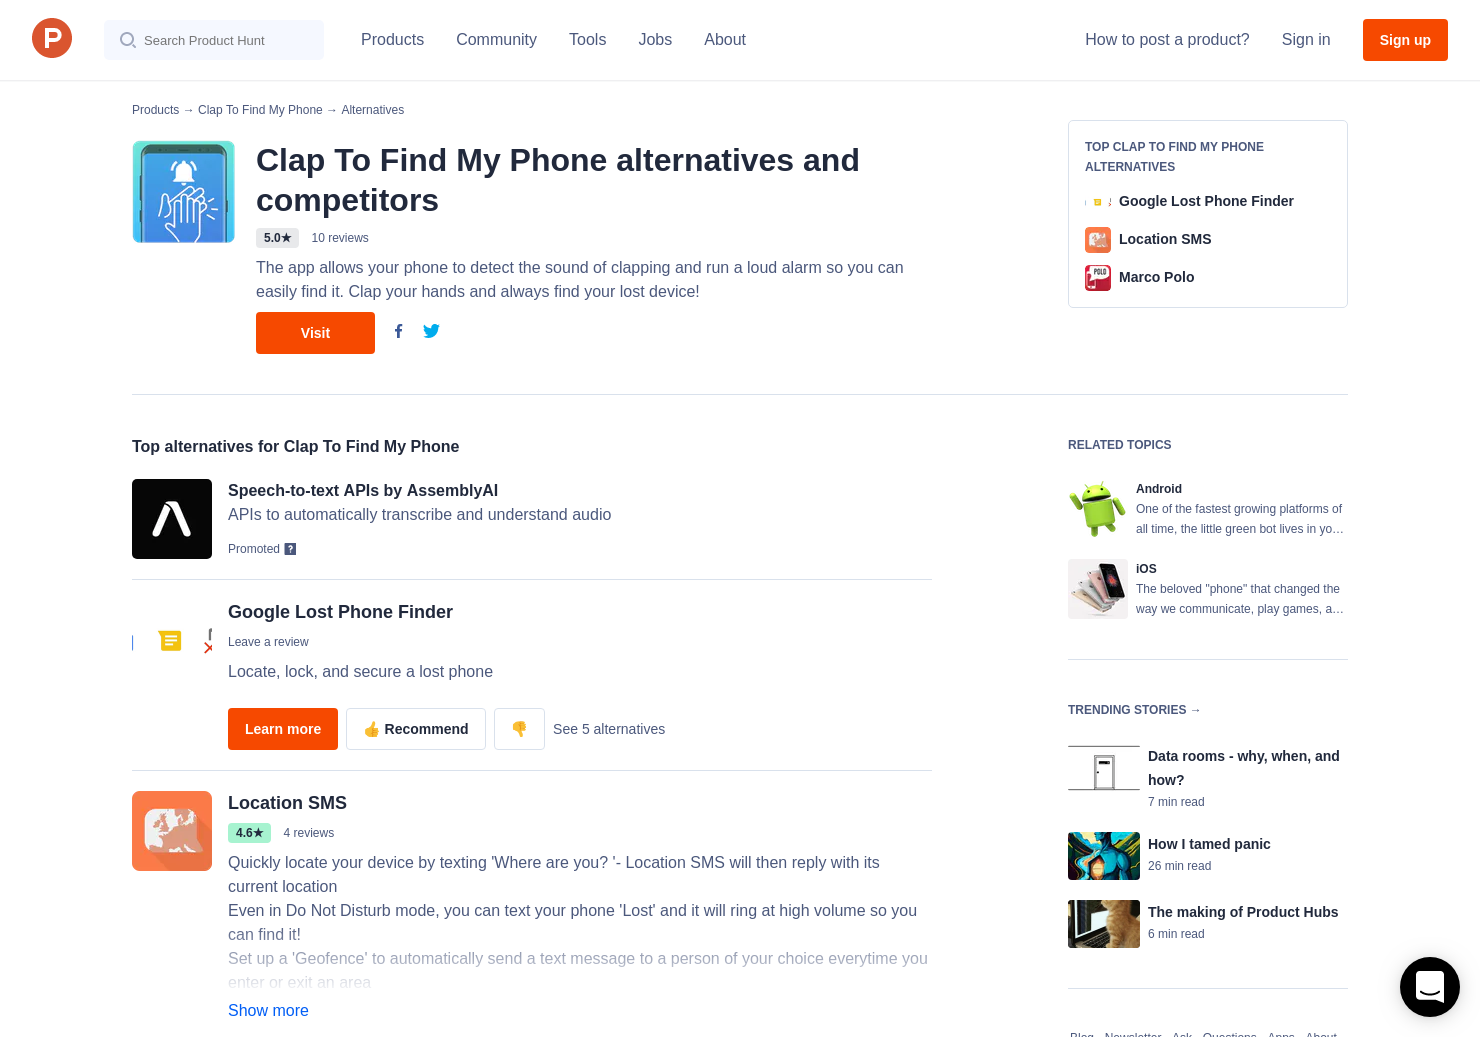 10 Alternatives to Clap To Find My Phone for Android, iPhone